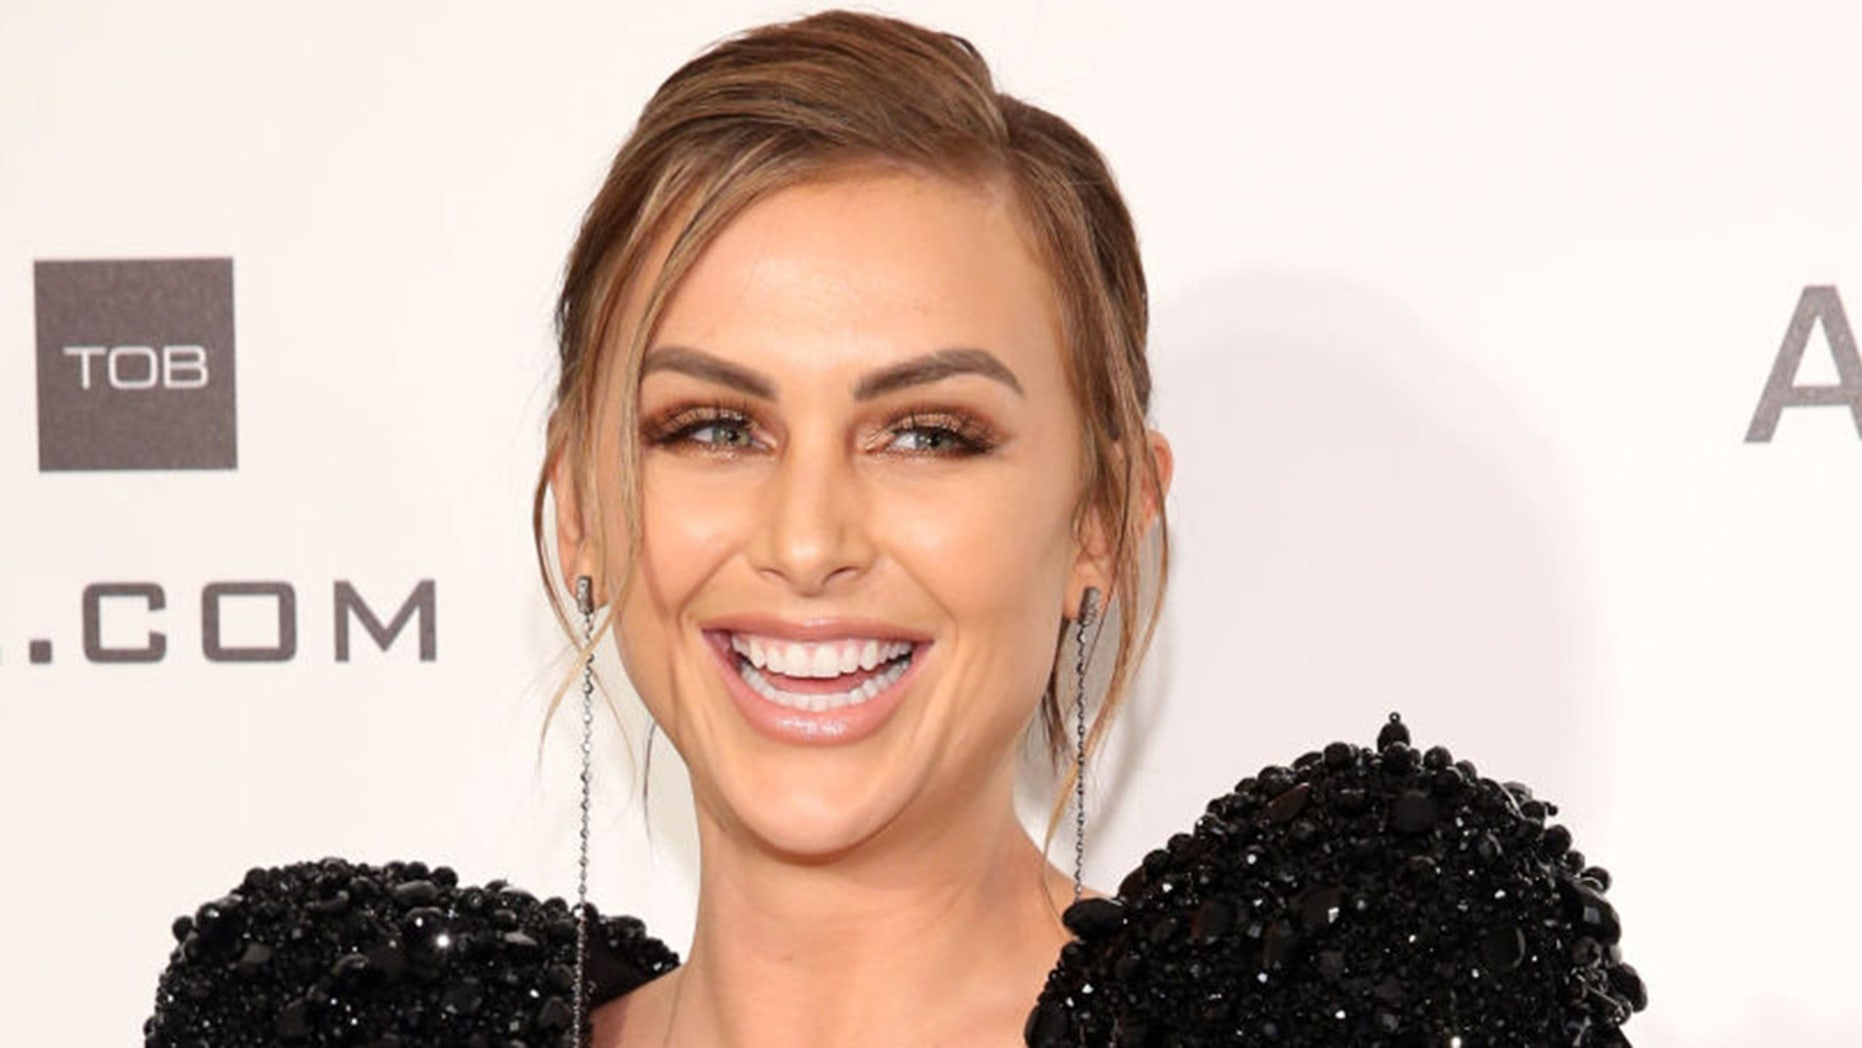 Lala Kent revealed on Sunday that she's an alcoholic.